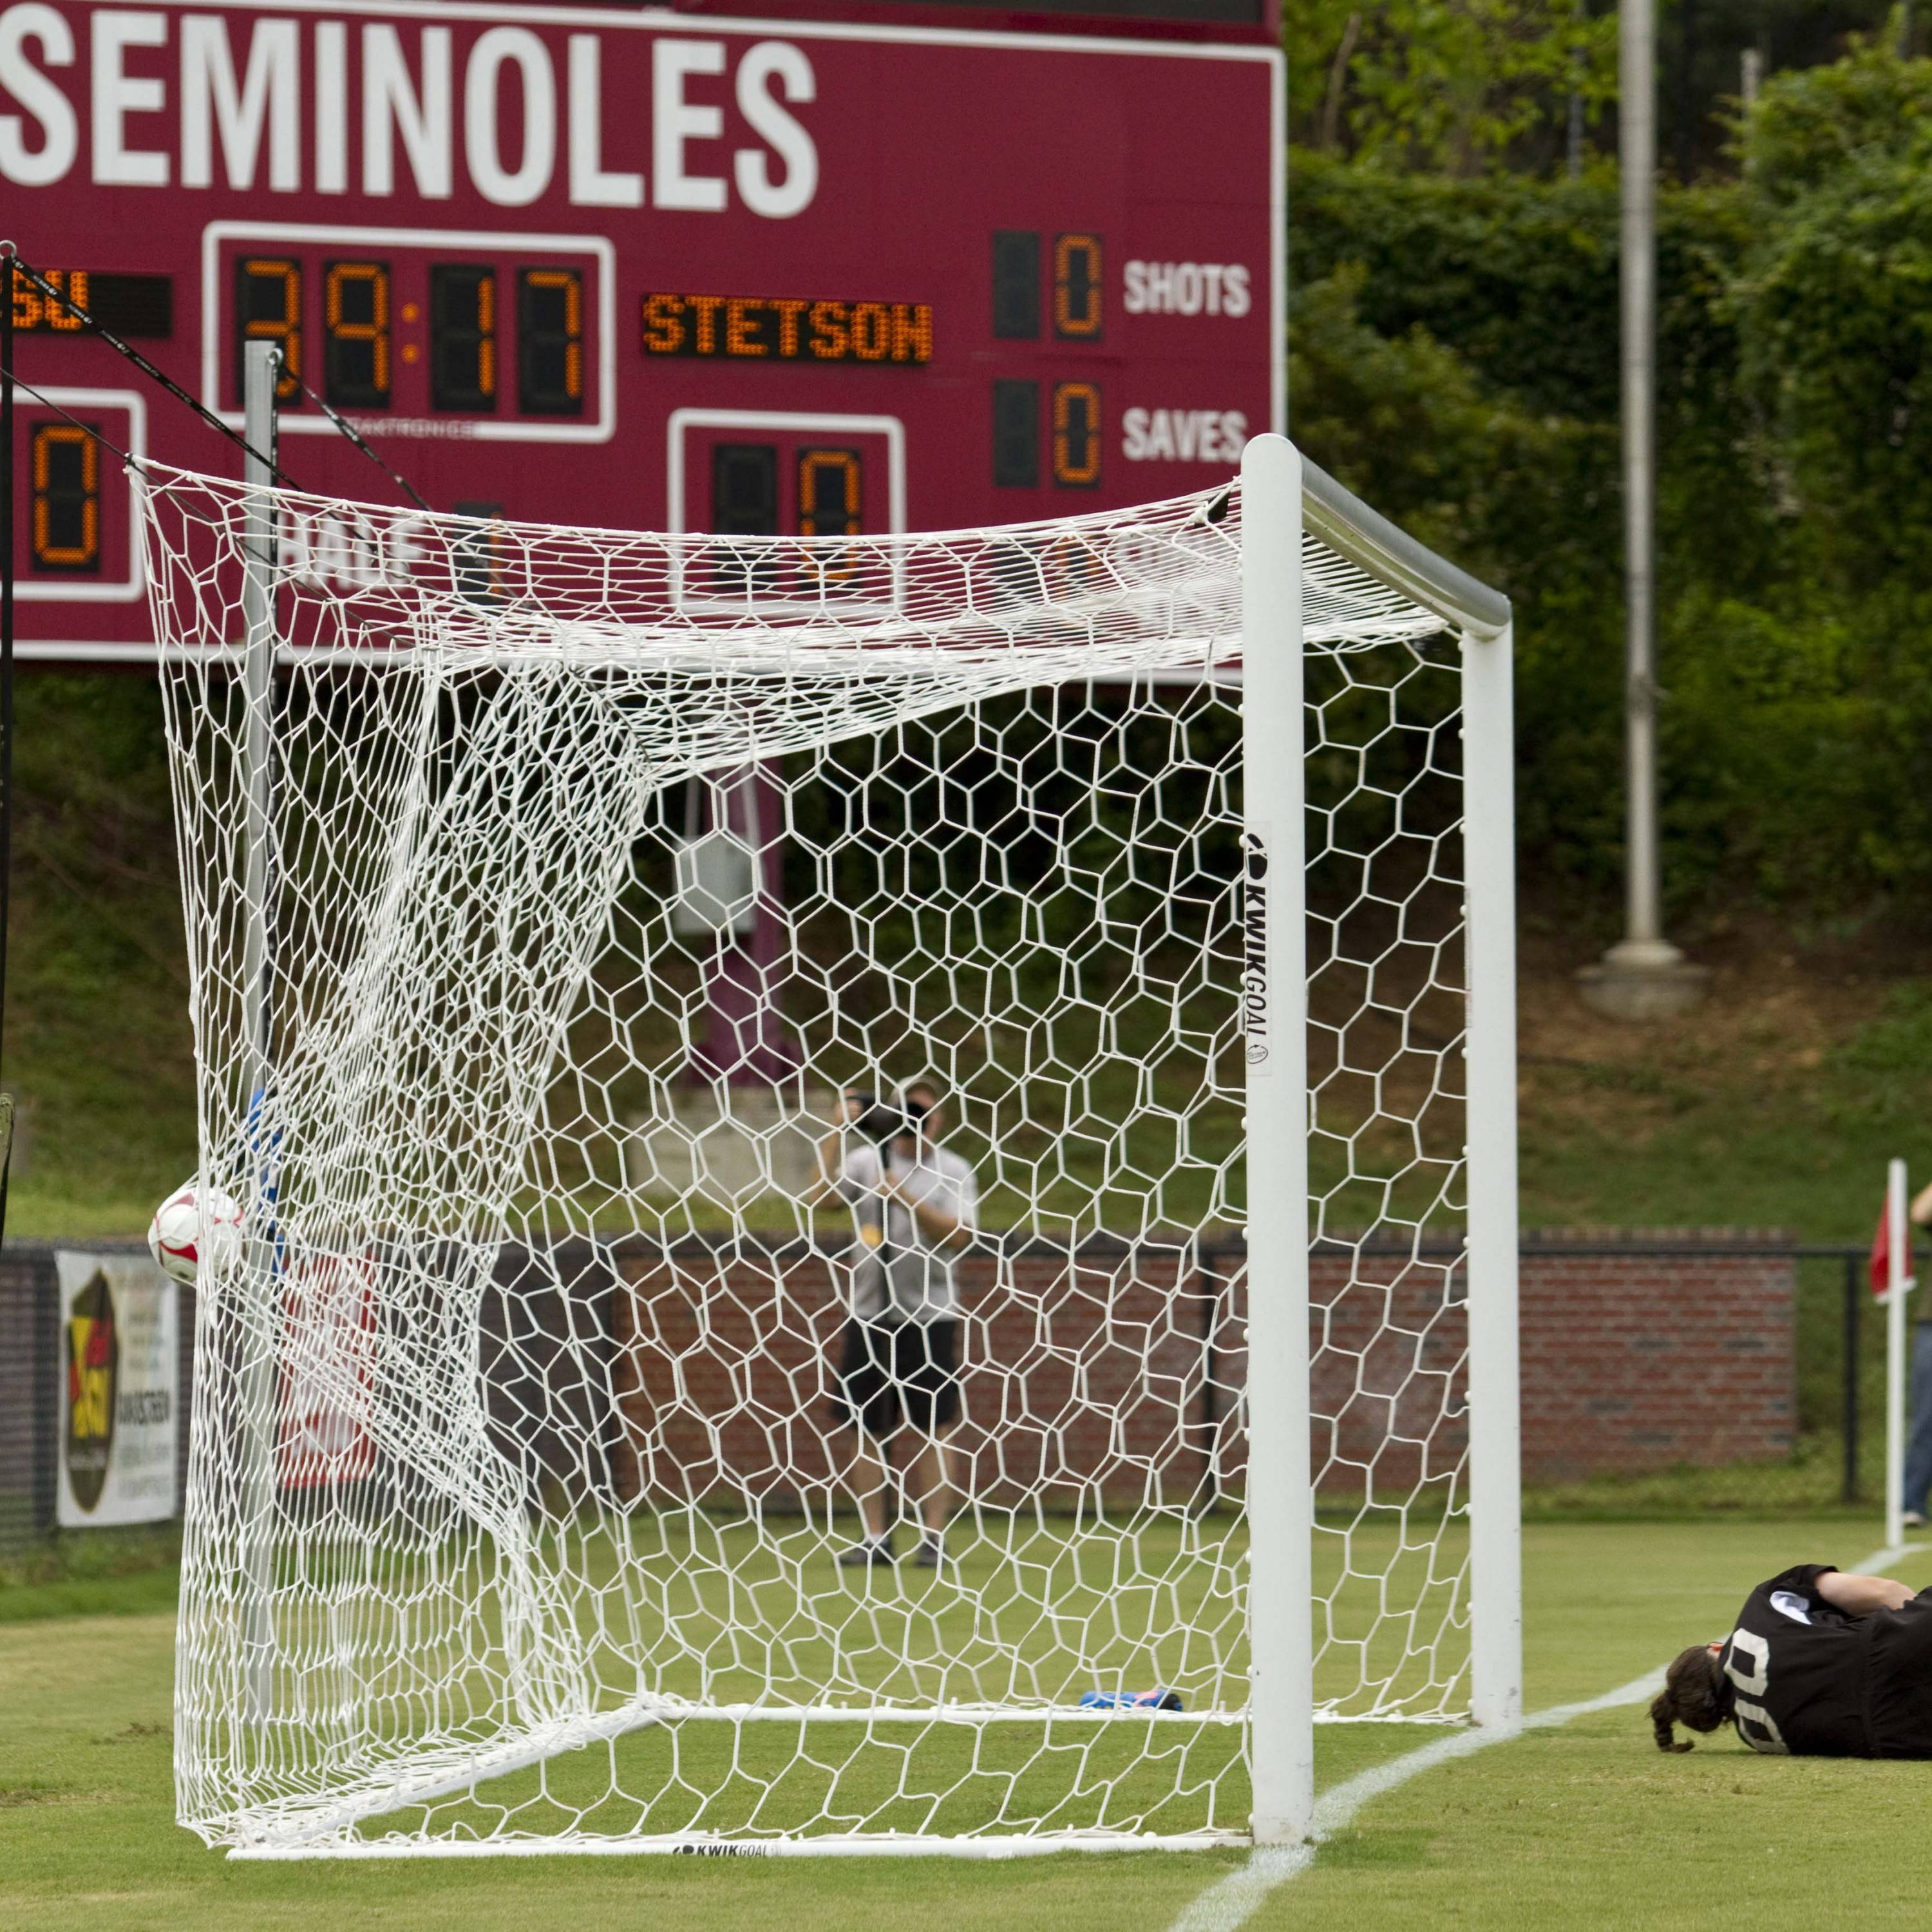 The game ball hits the net as the Seminoles score the first goal of the game.